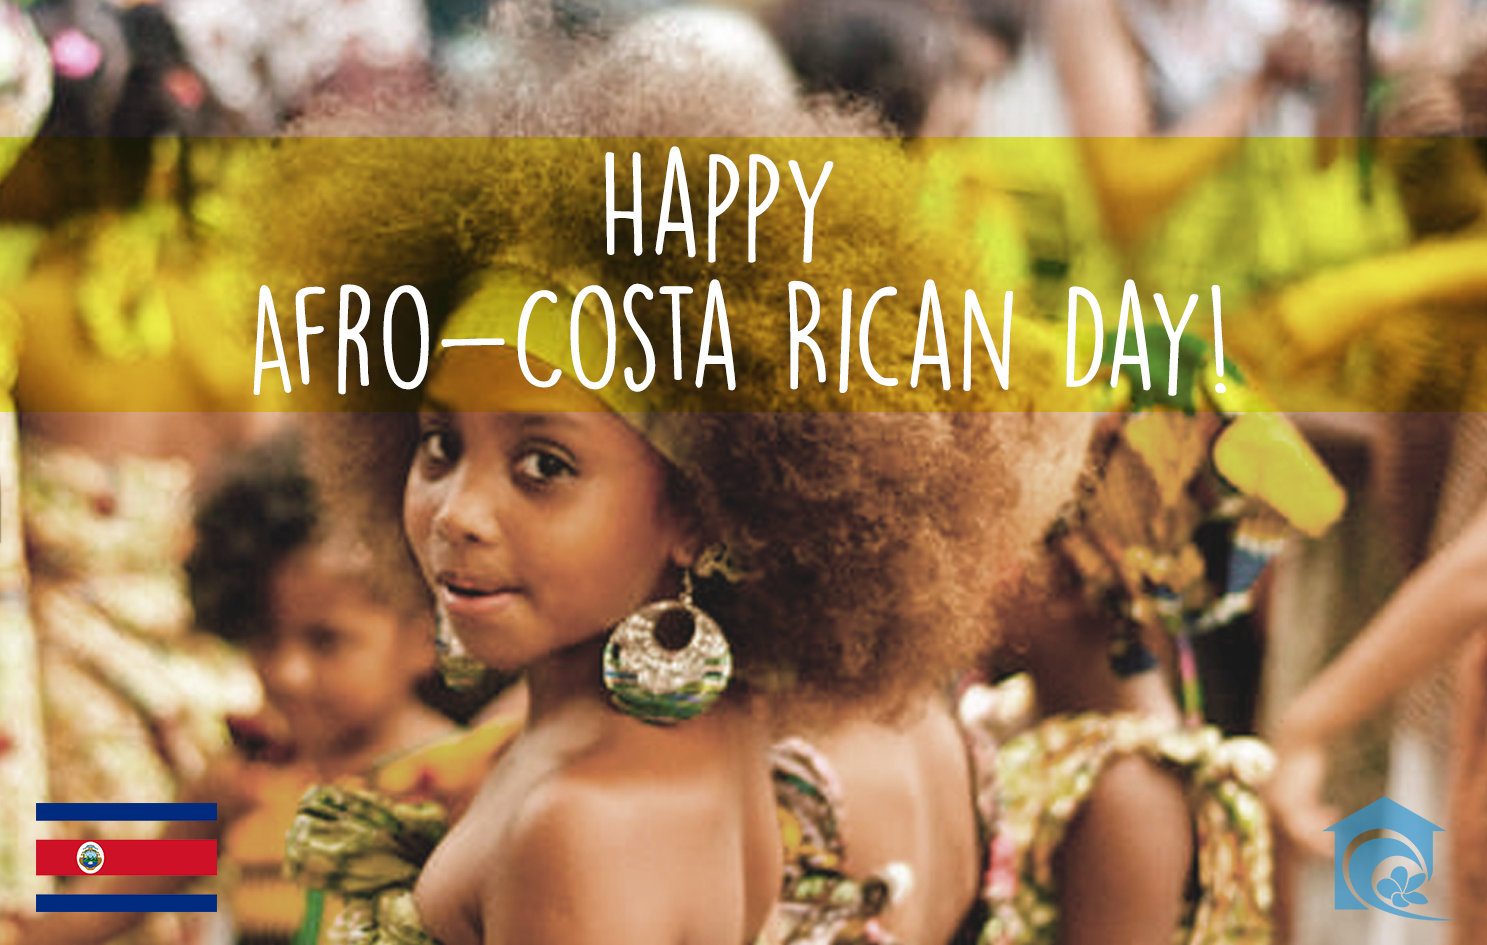 Afro costa ricans